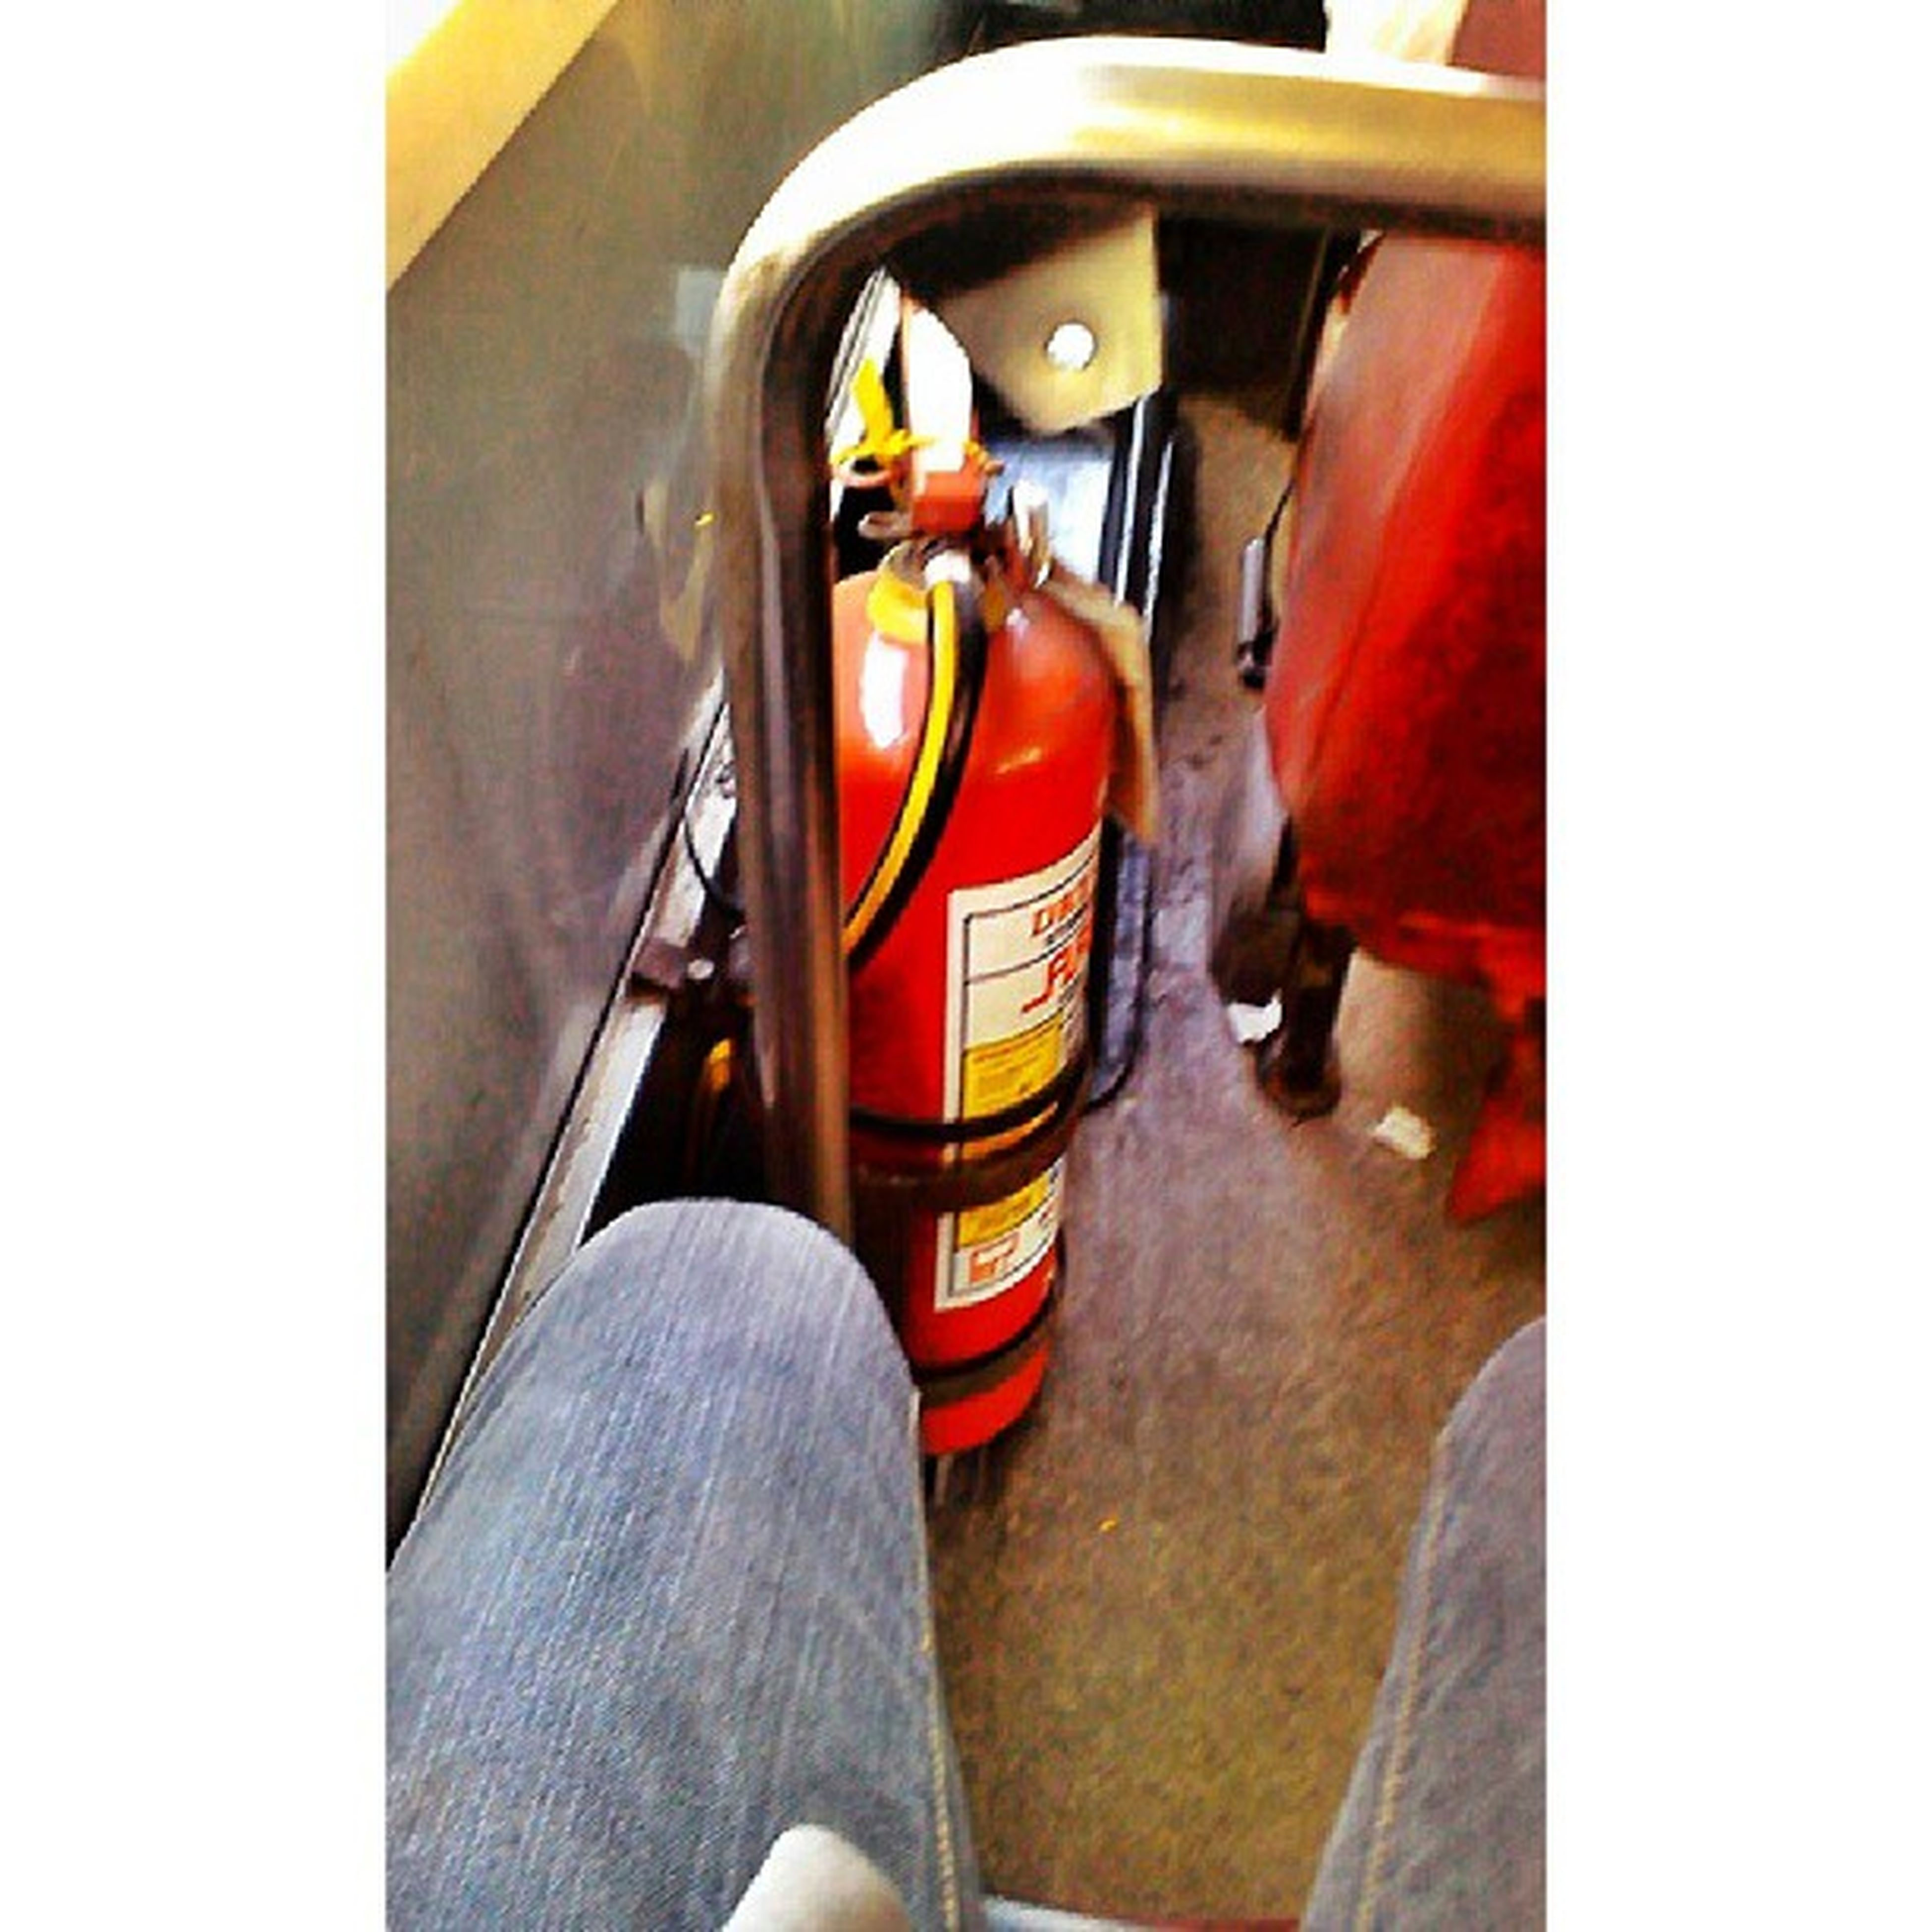 Rarely you would see a bus having a fire extinguisher. All buses should have this. MarikinaAutoLine Northbound